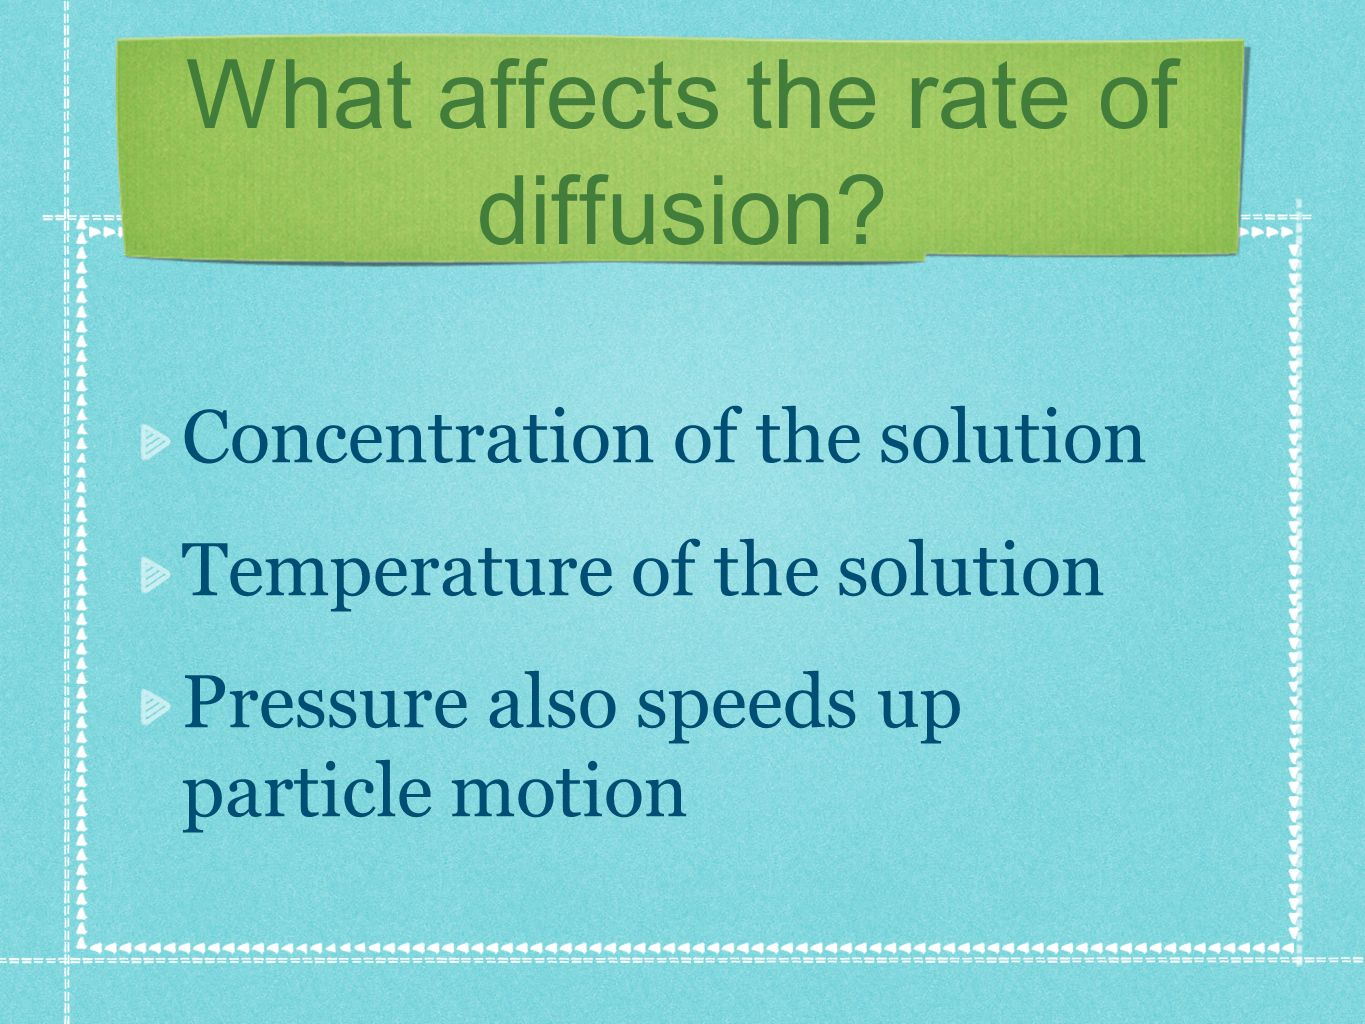 What affects the rate of diffusion